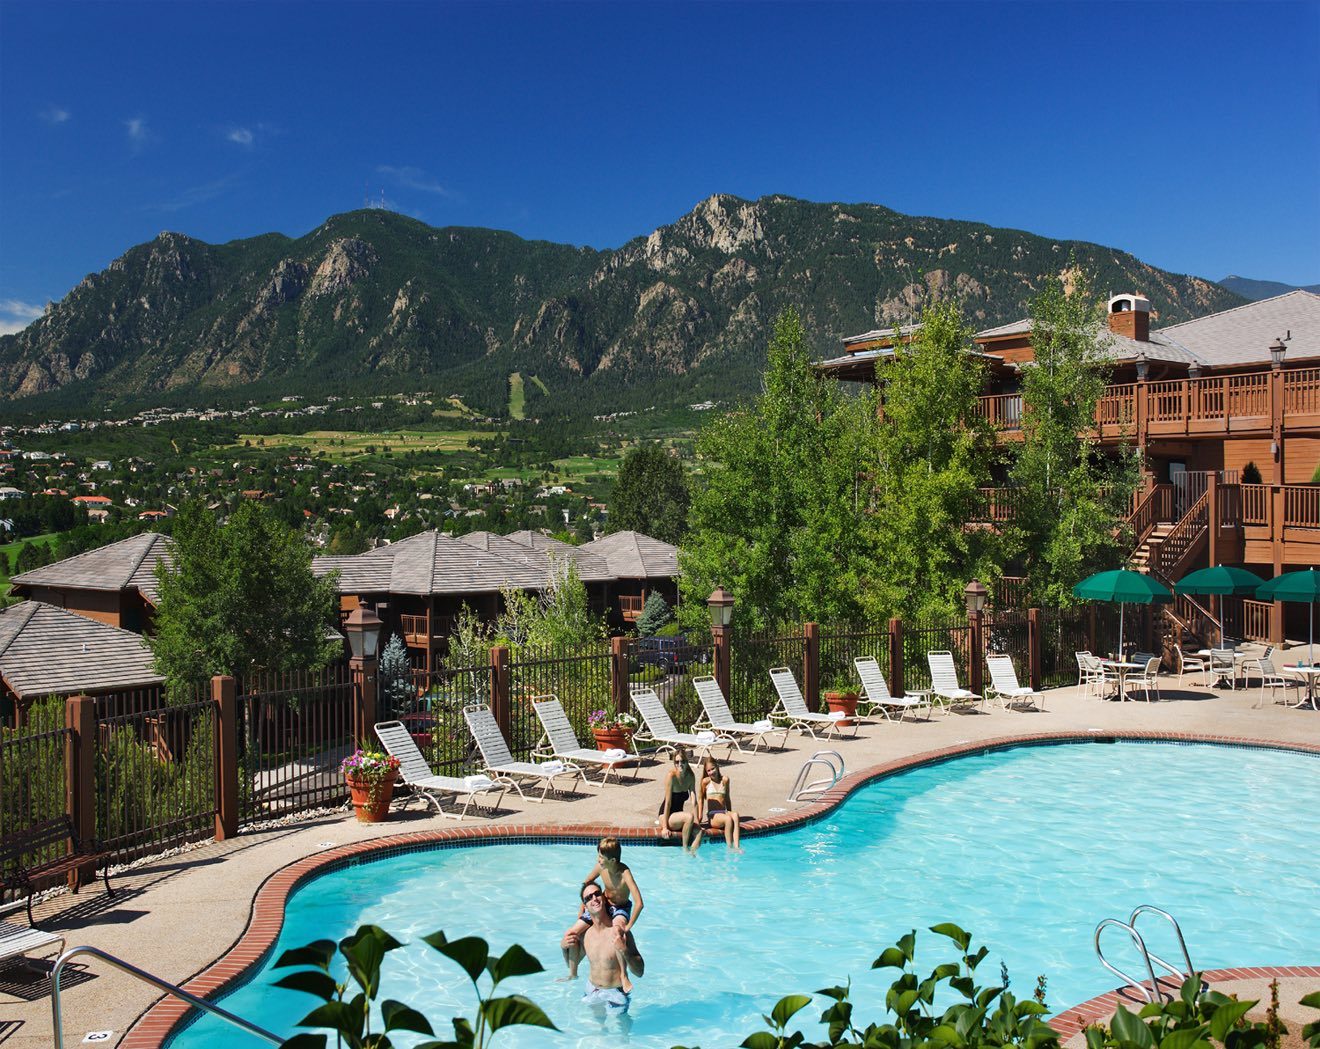 These 5 Boutique Hotels in Colorado Springs USA are Cool!